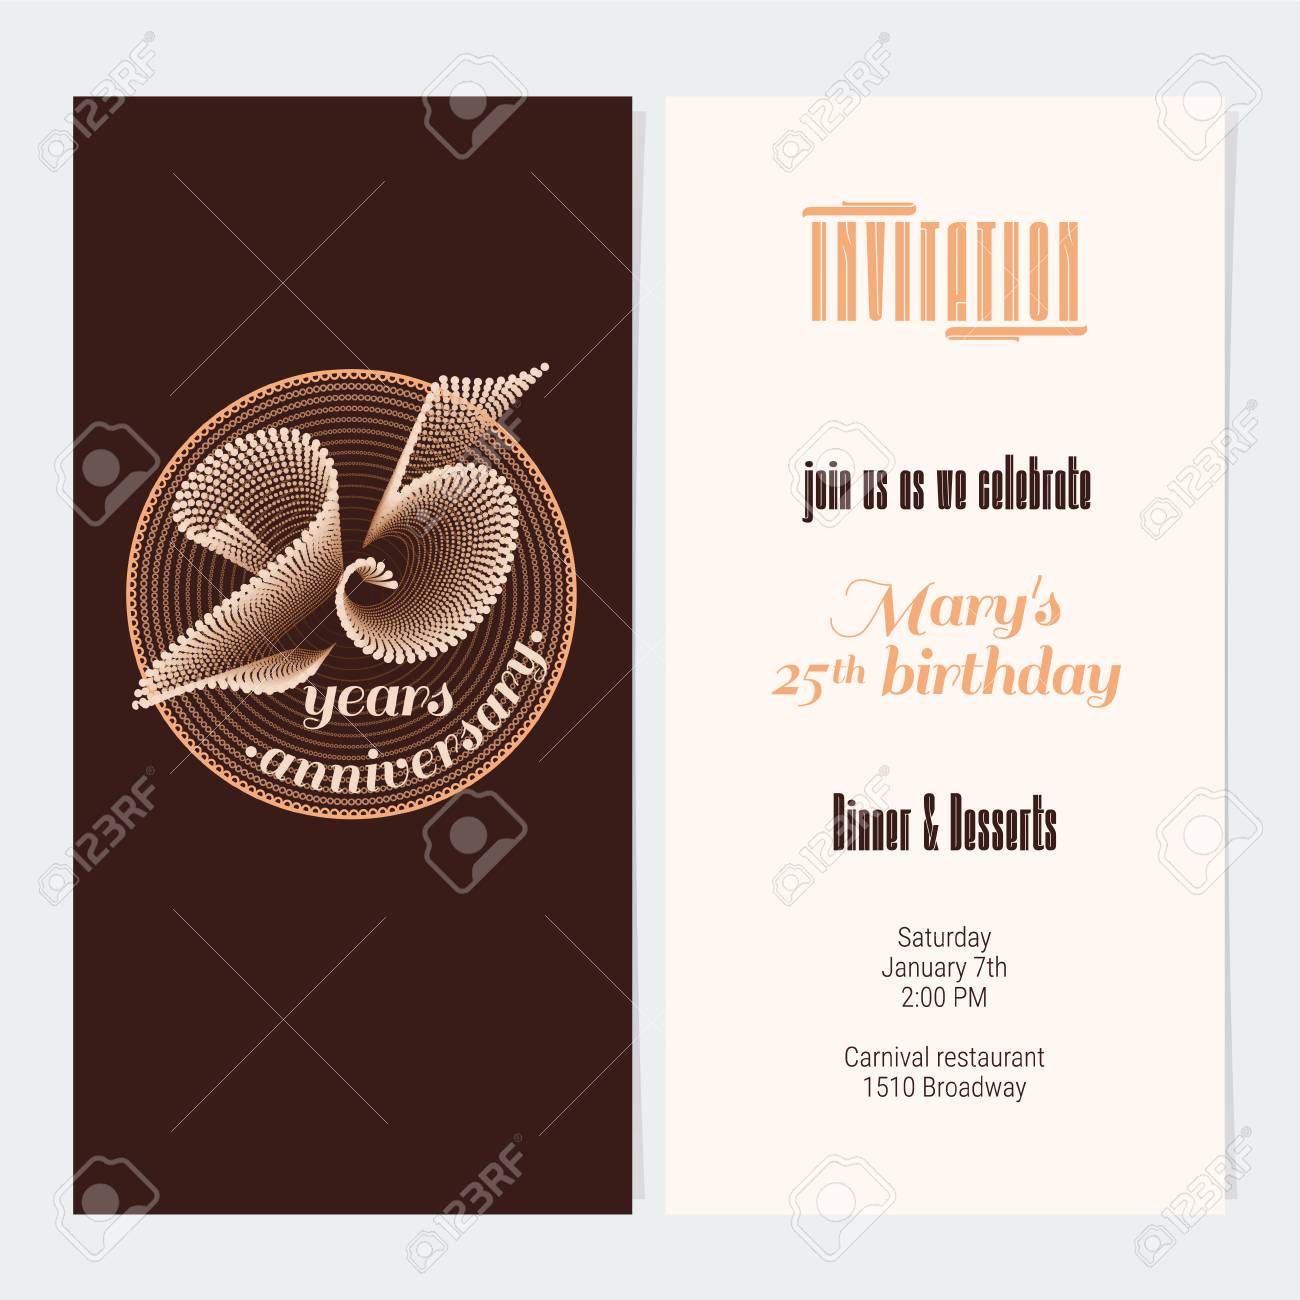 25 Years Anniversary Invitation Vector Illustration Graphic Design Element For 25th Birthday Card Party